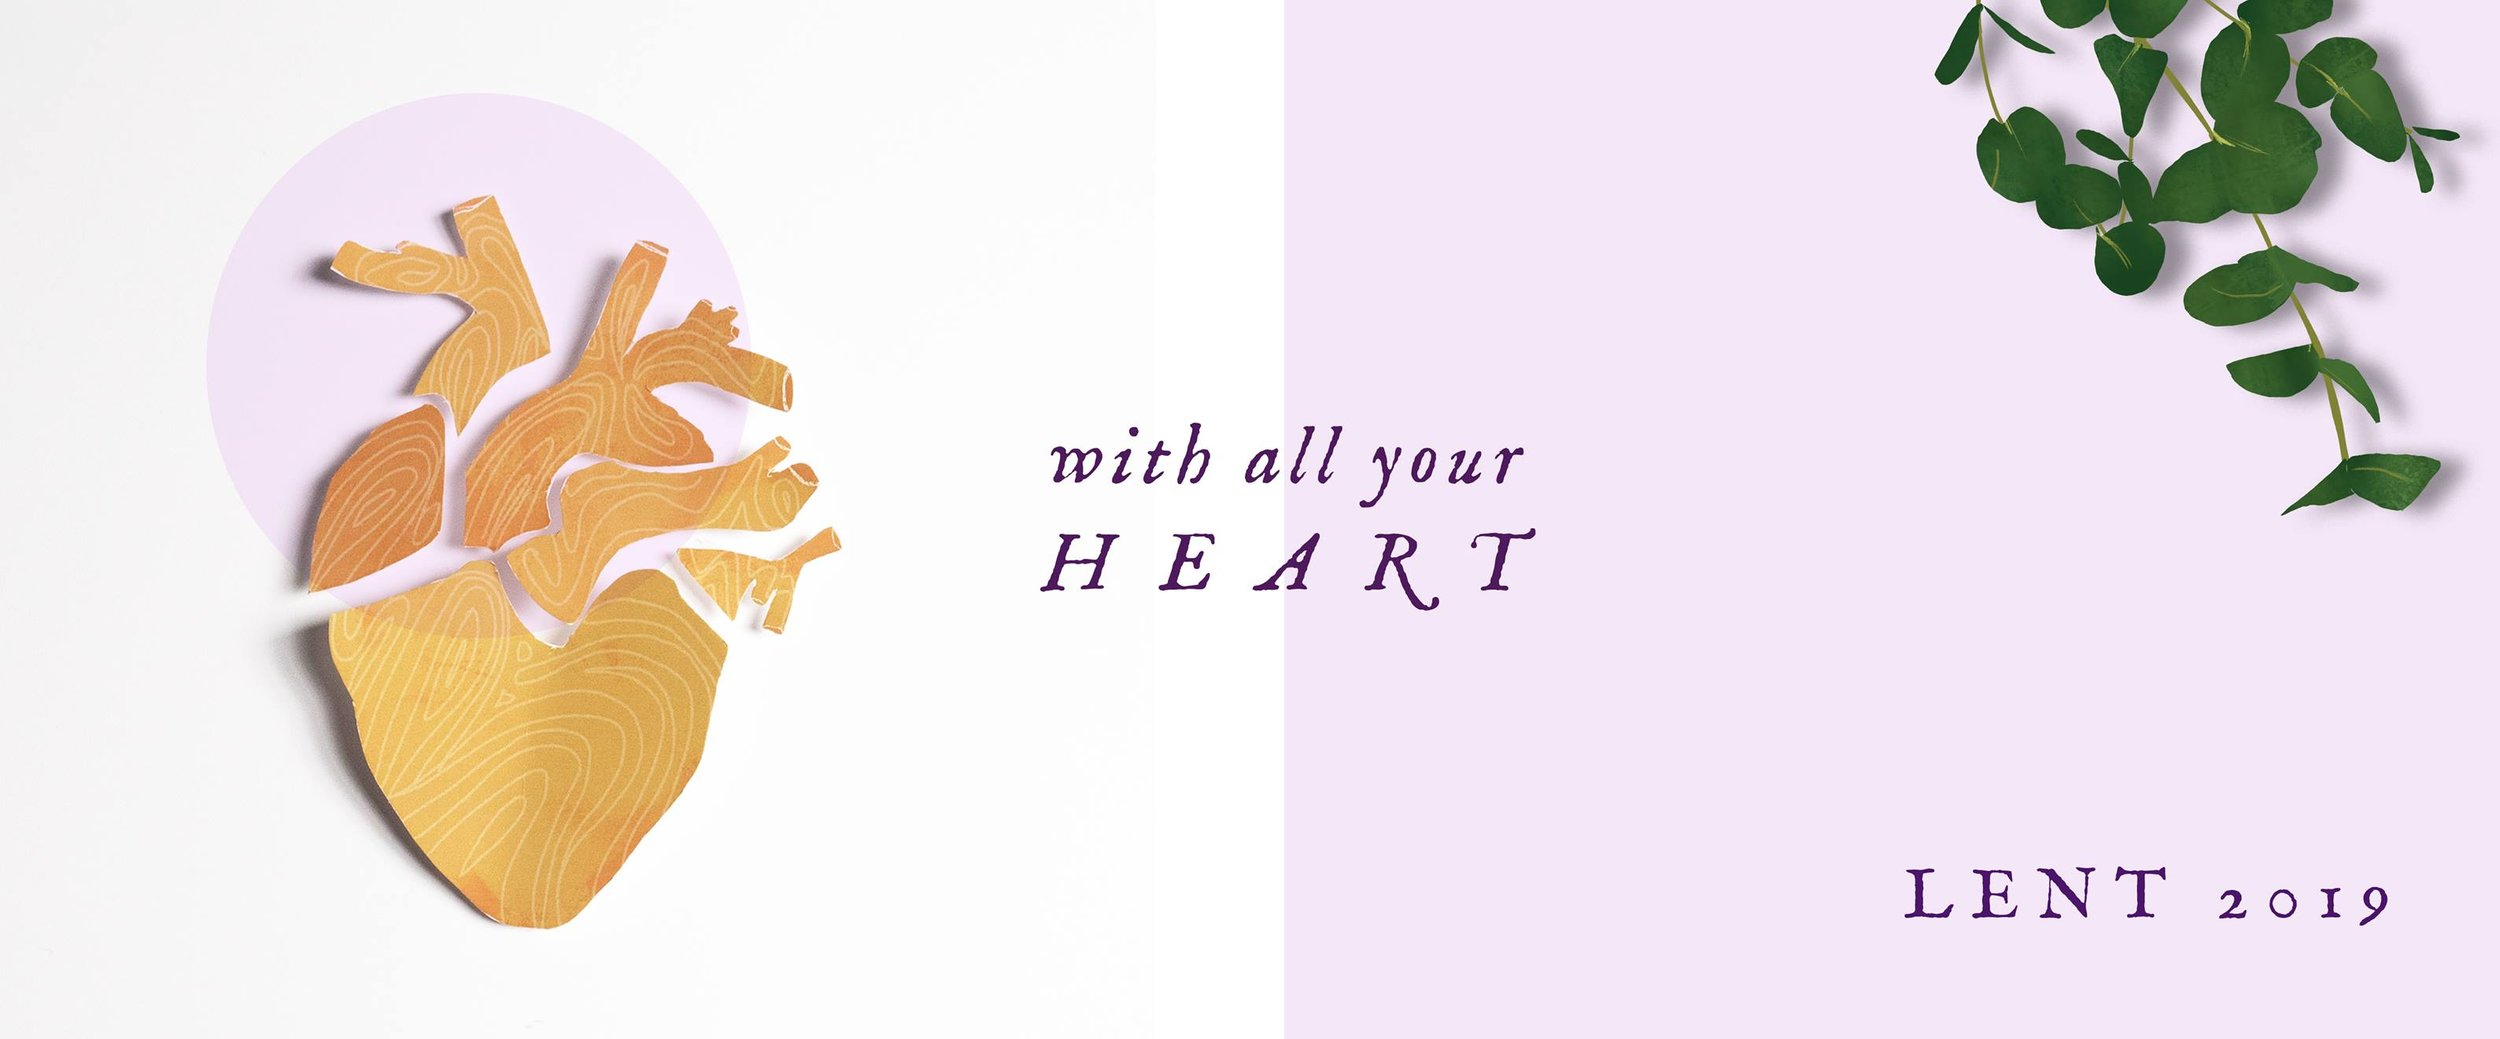 With All Your Heart Cover.jpg